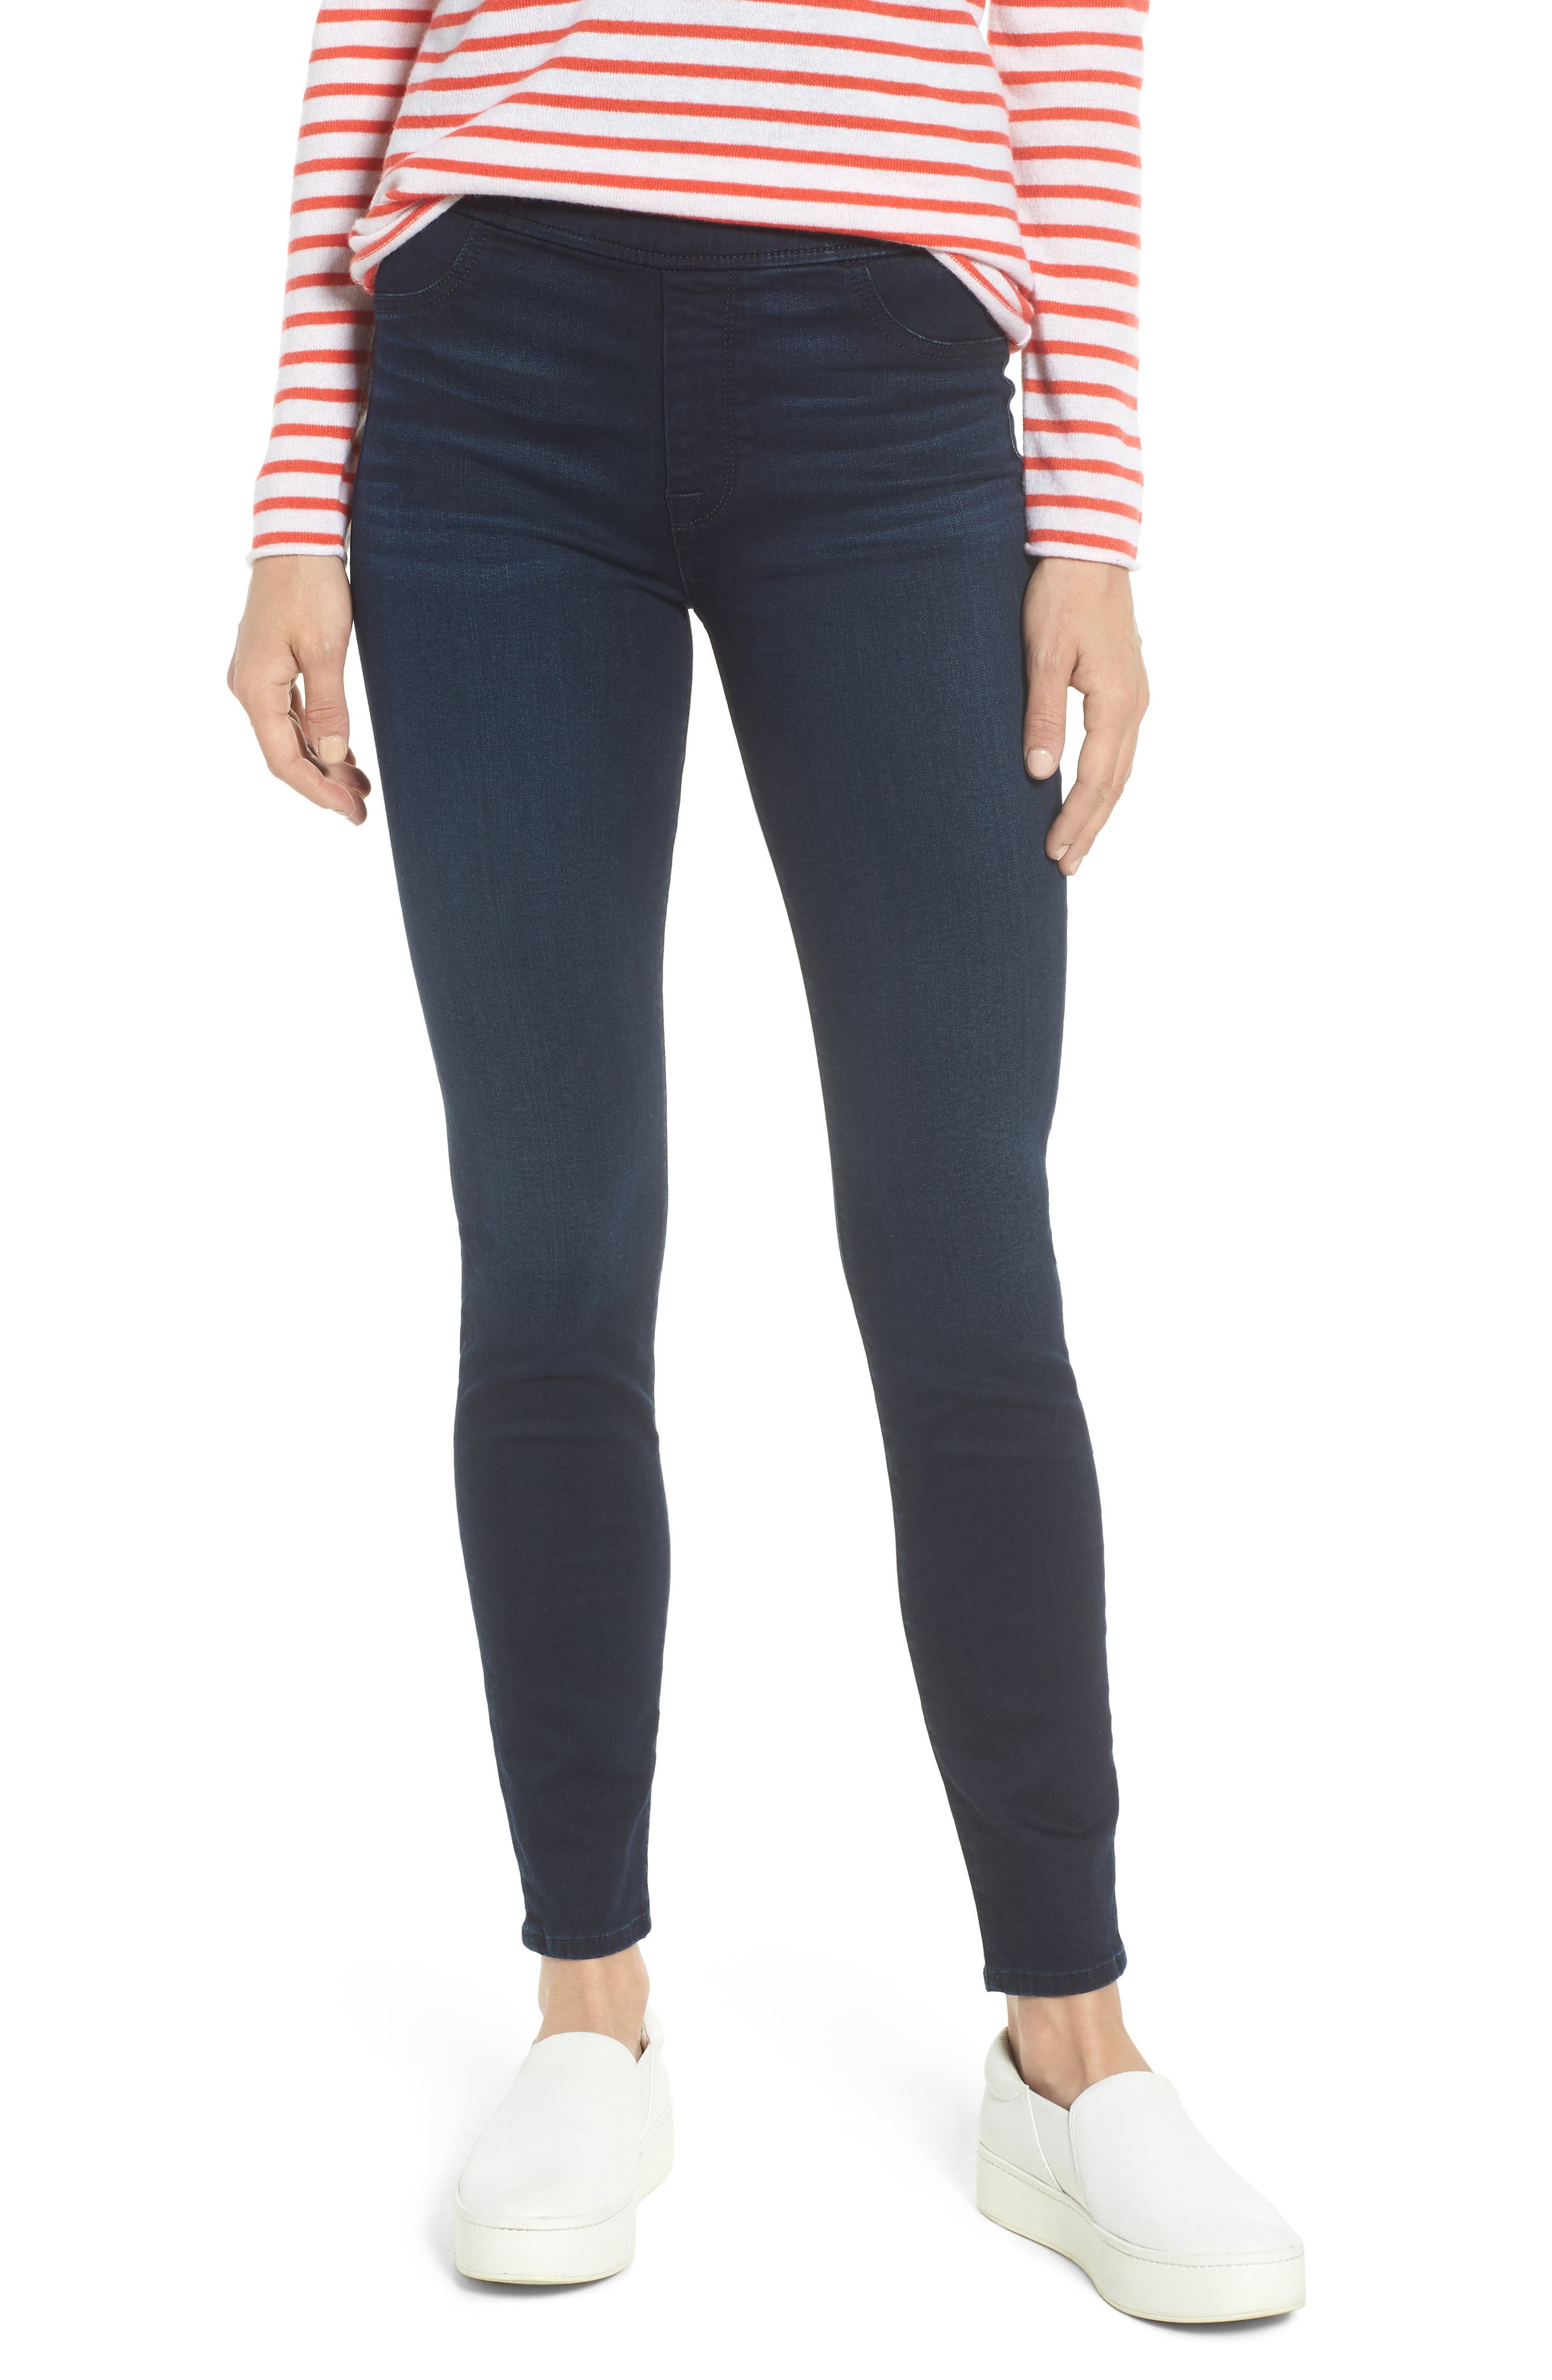 Comfort Skinny Denim Leggings,                             Main thumbnail 1, color,                             RICHE TOUCH BLUE/BLACK